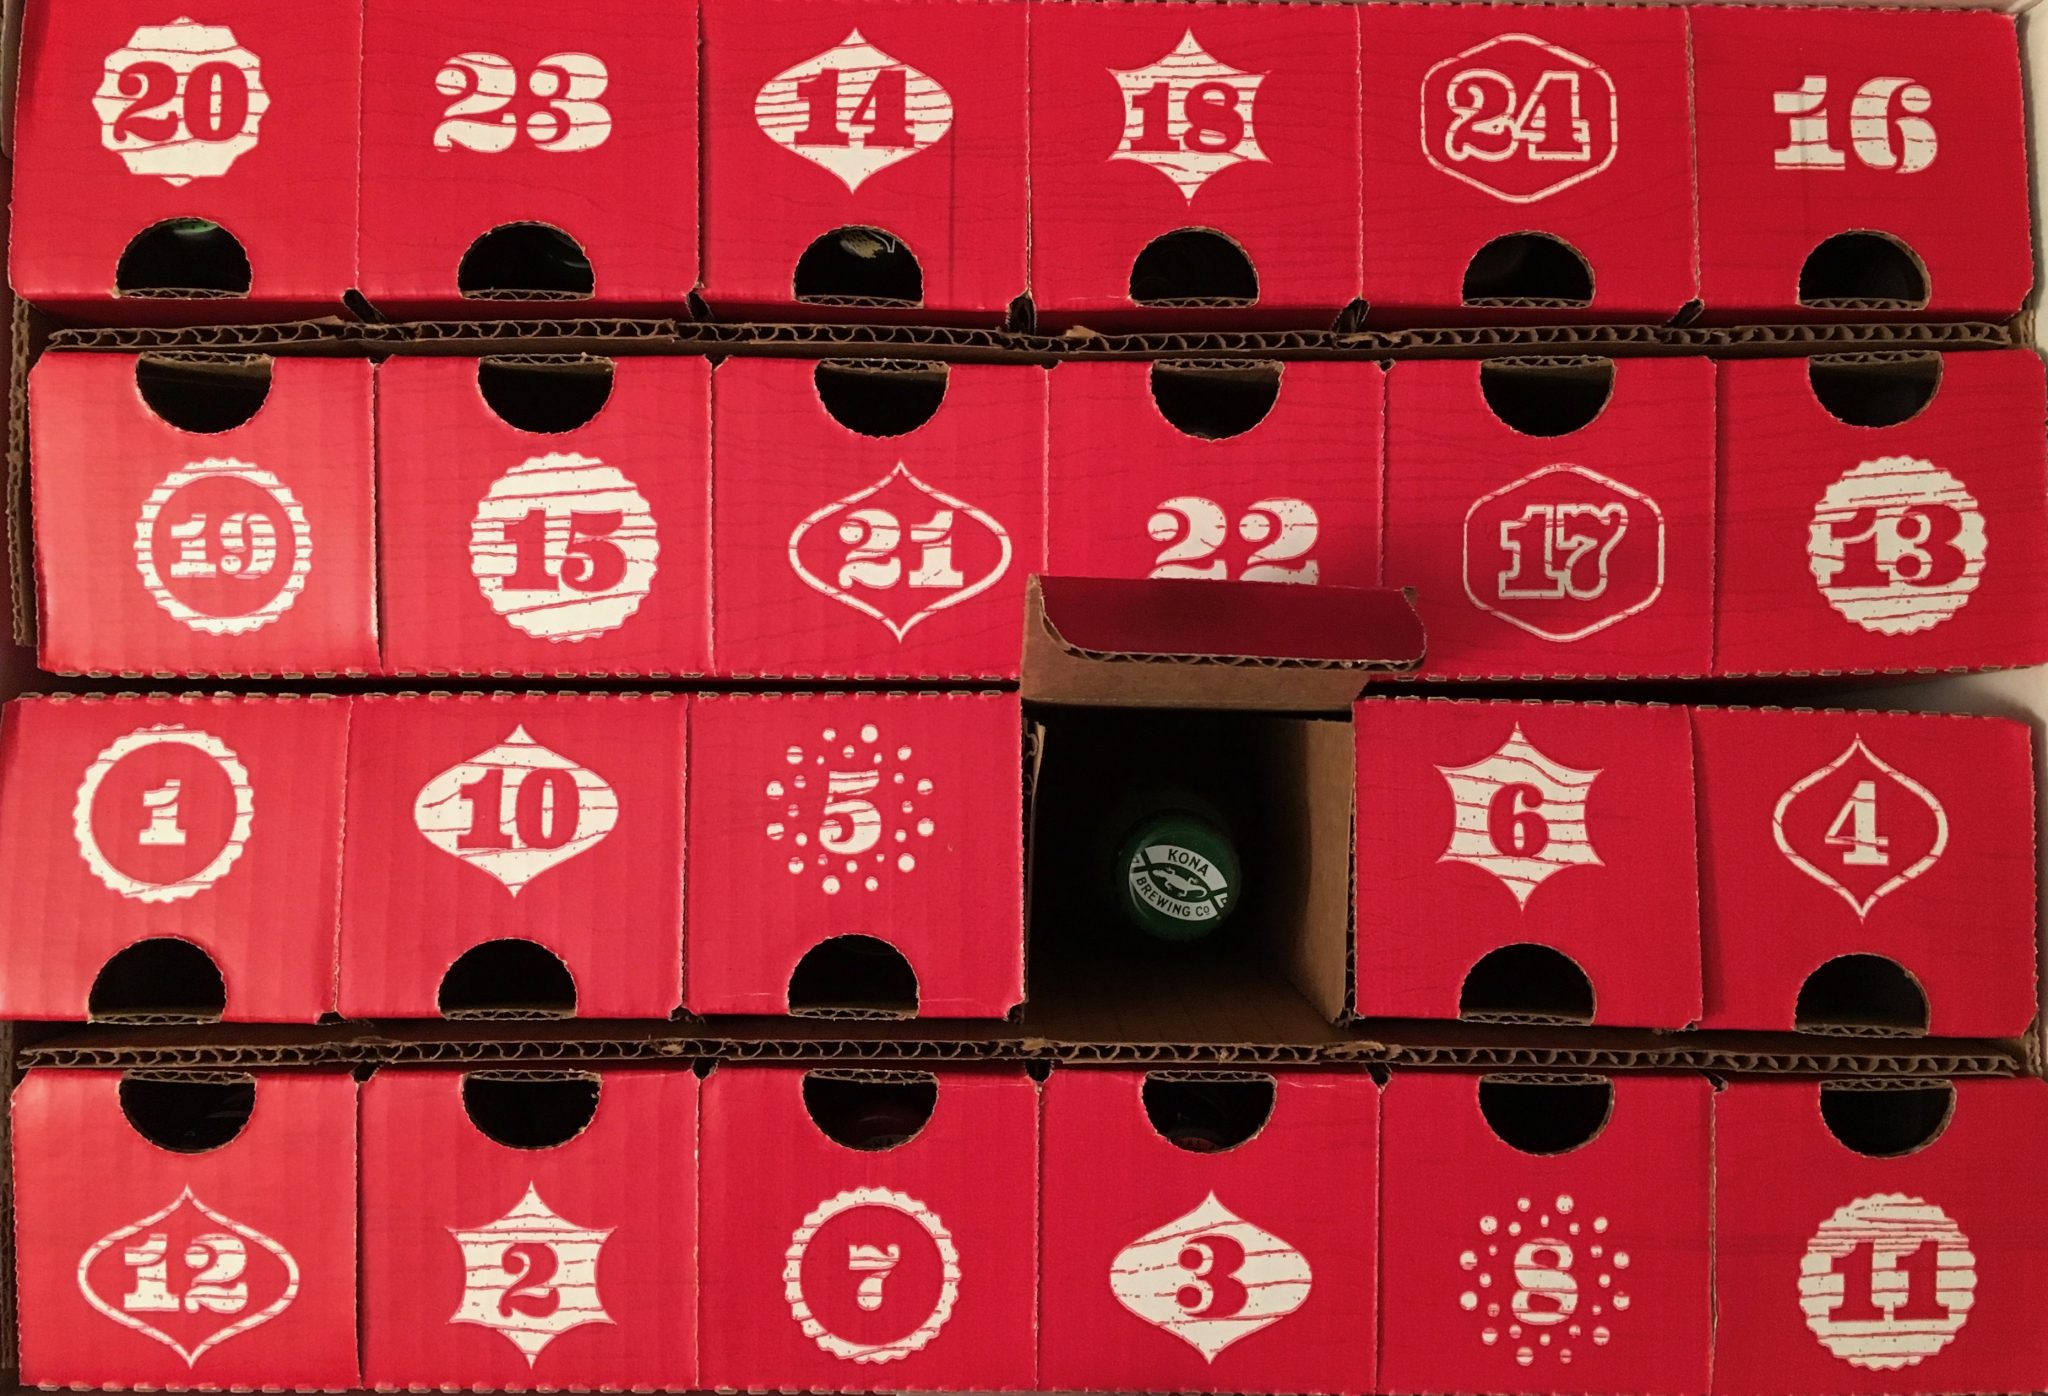 Advent Calendar Ideas Inside : Advent calendars that will make you poor but it s fine